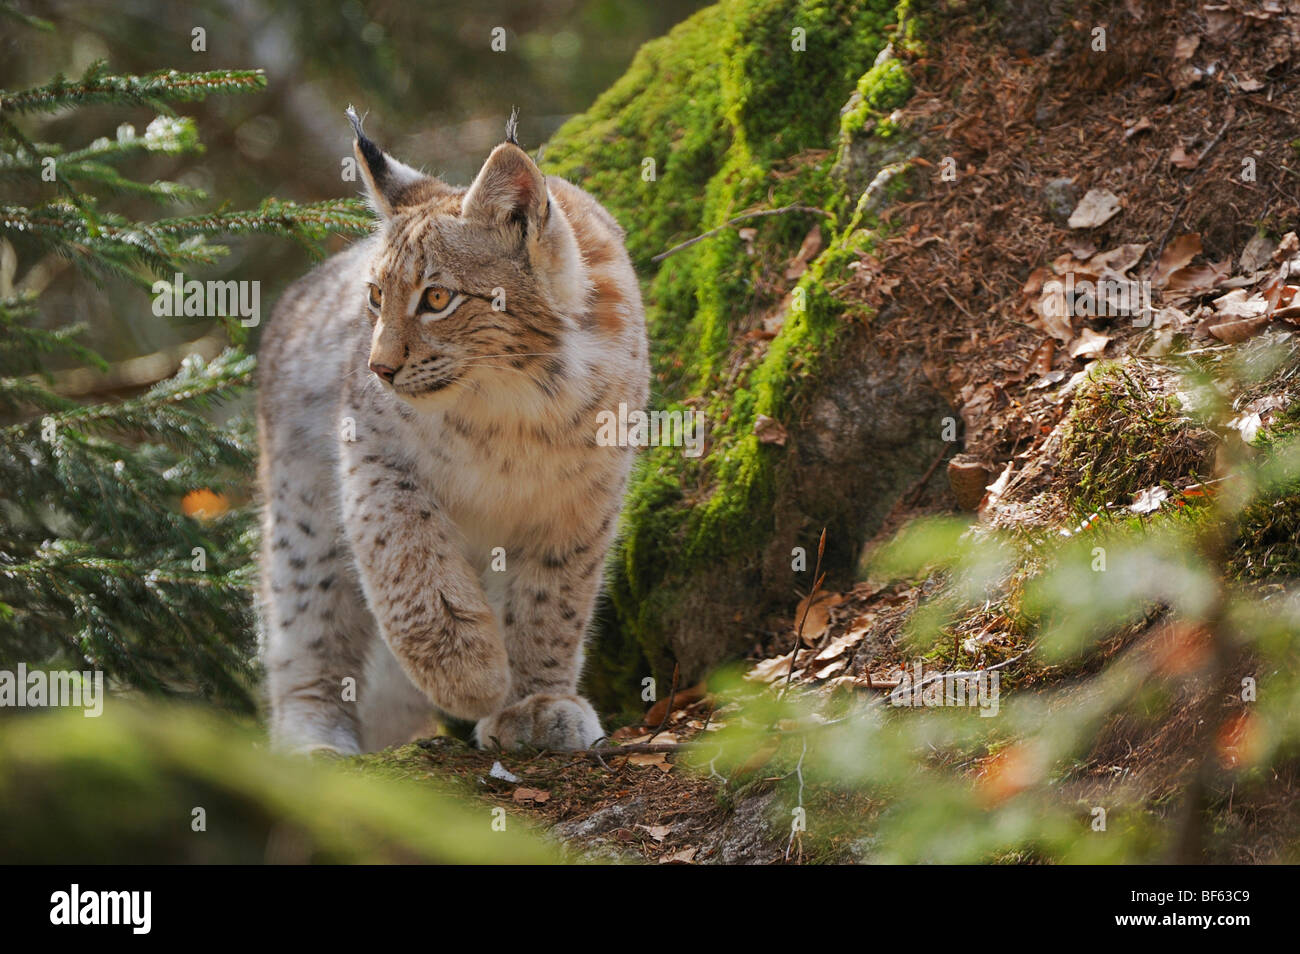 Eurasian Lynx (Lynx lynx), young sitting on rock, Switzerland, Europe - Stock Image